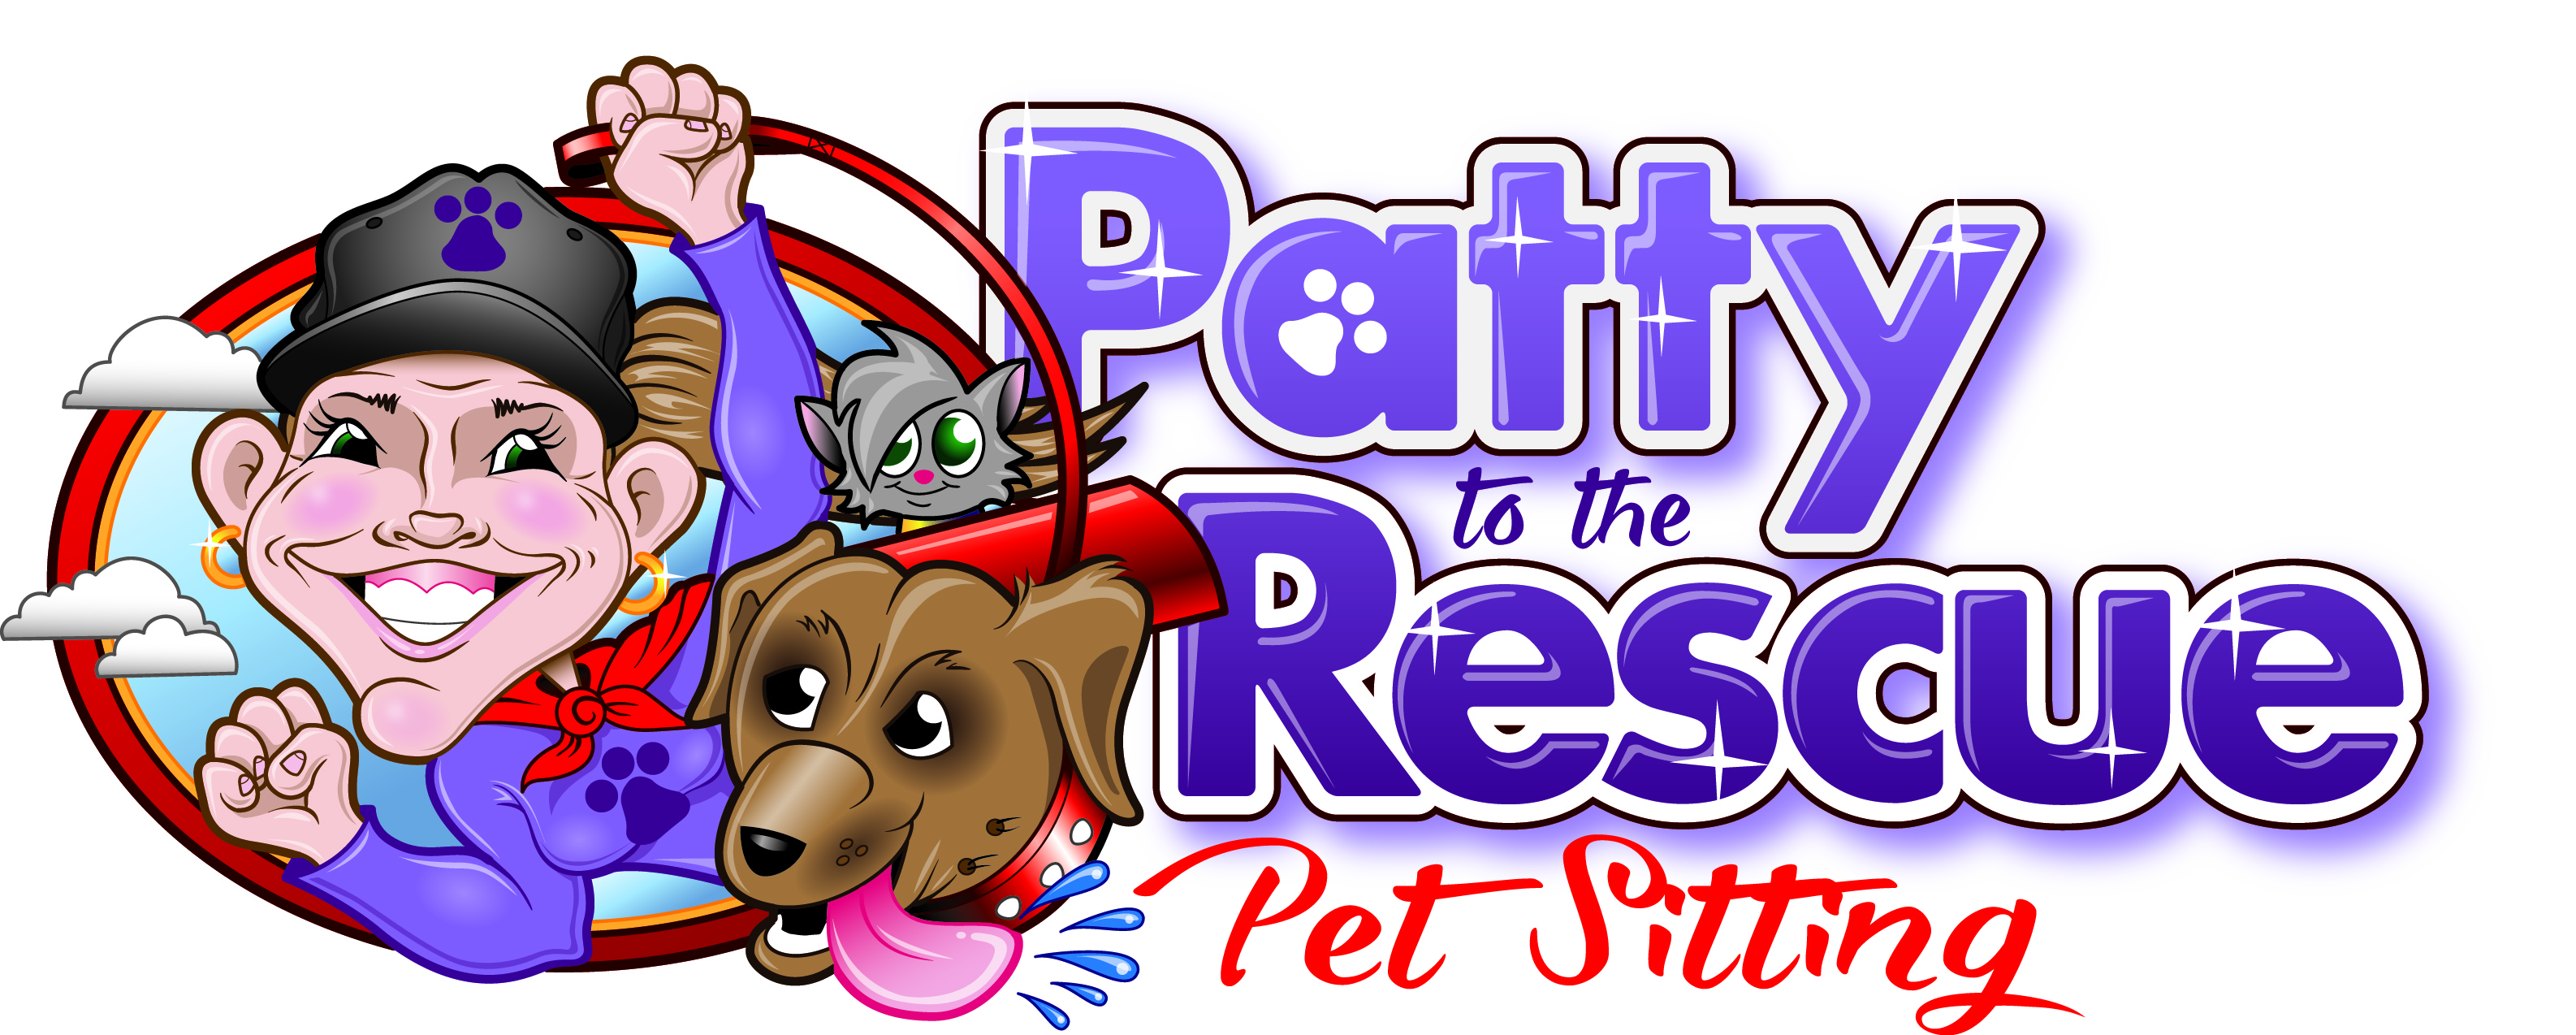 Arlington Pet Sitter - Dog Walking - Patty to the Rescue Pet Sitting